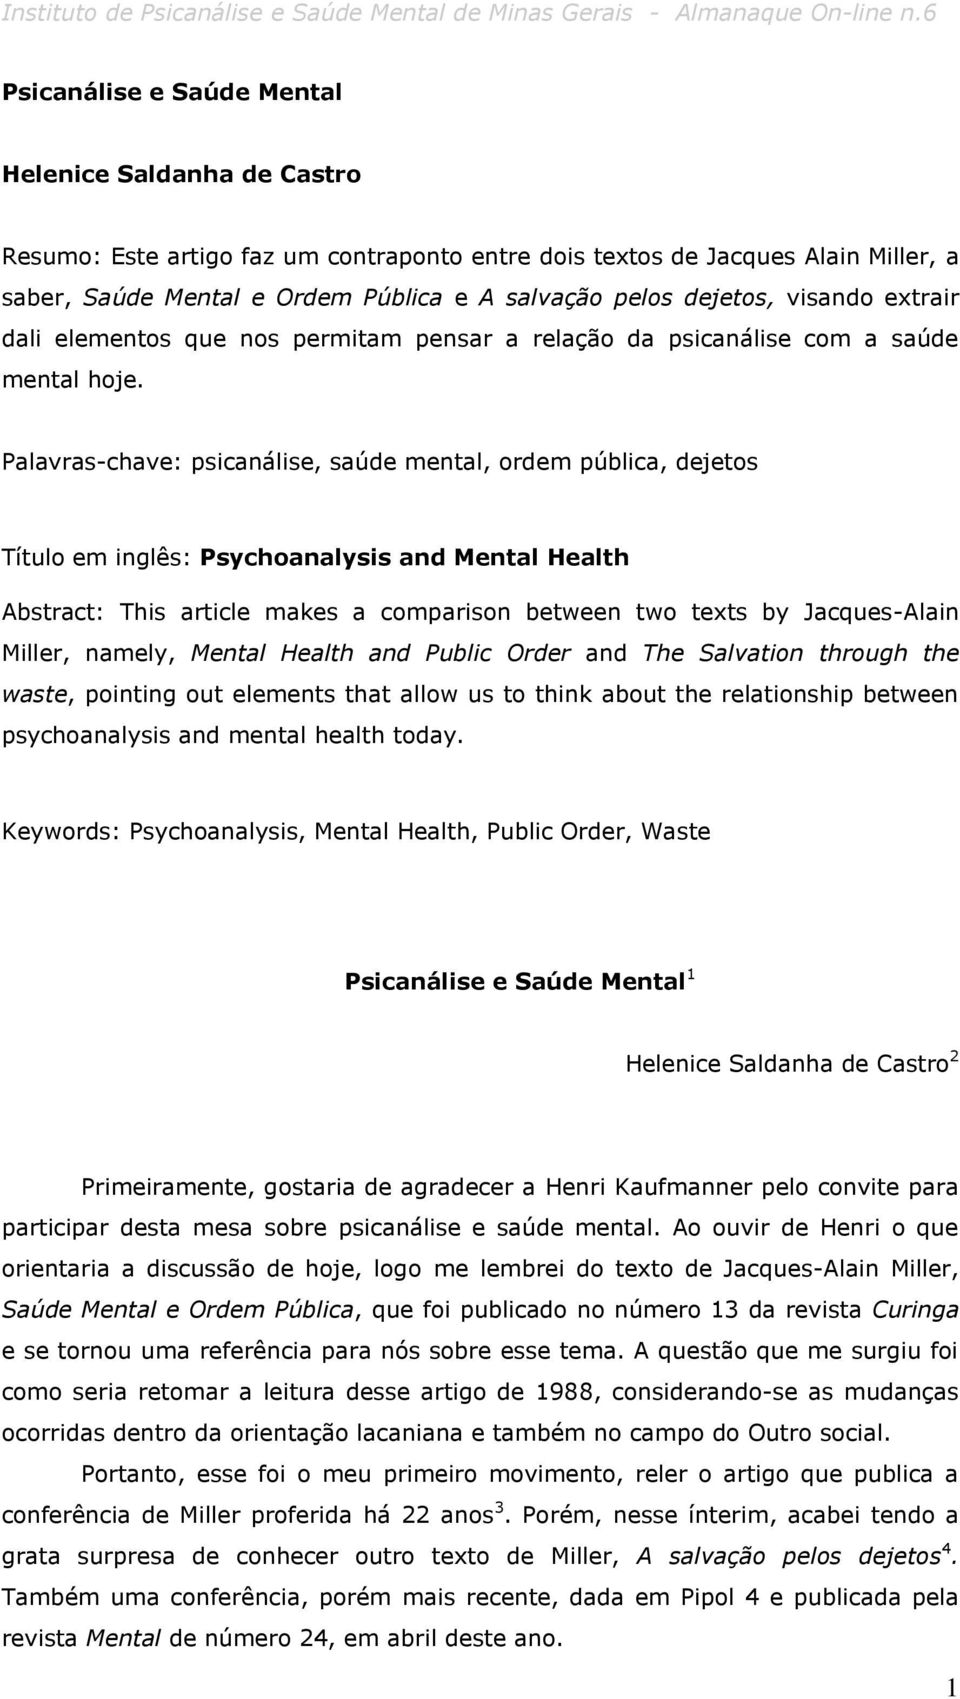 Palavras-chave: psicanálise, saúde mental, ordem pública, dejetos Título em inglês: Psychoanalysis and Mental Health Abstract: This article makes a comparison between two texts by Jacques-Alain